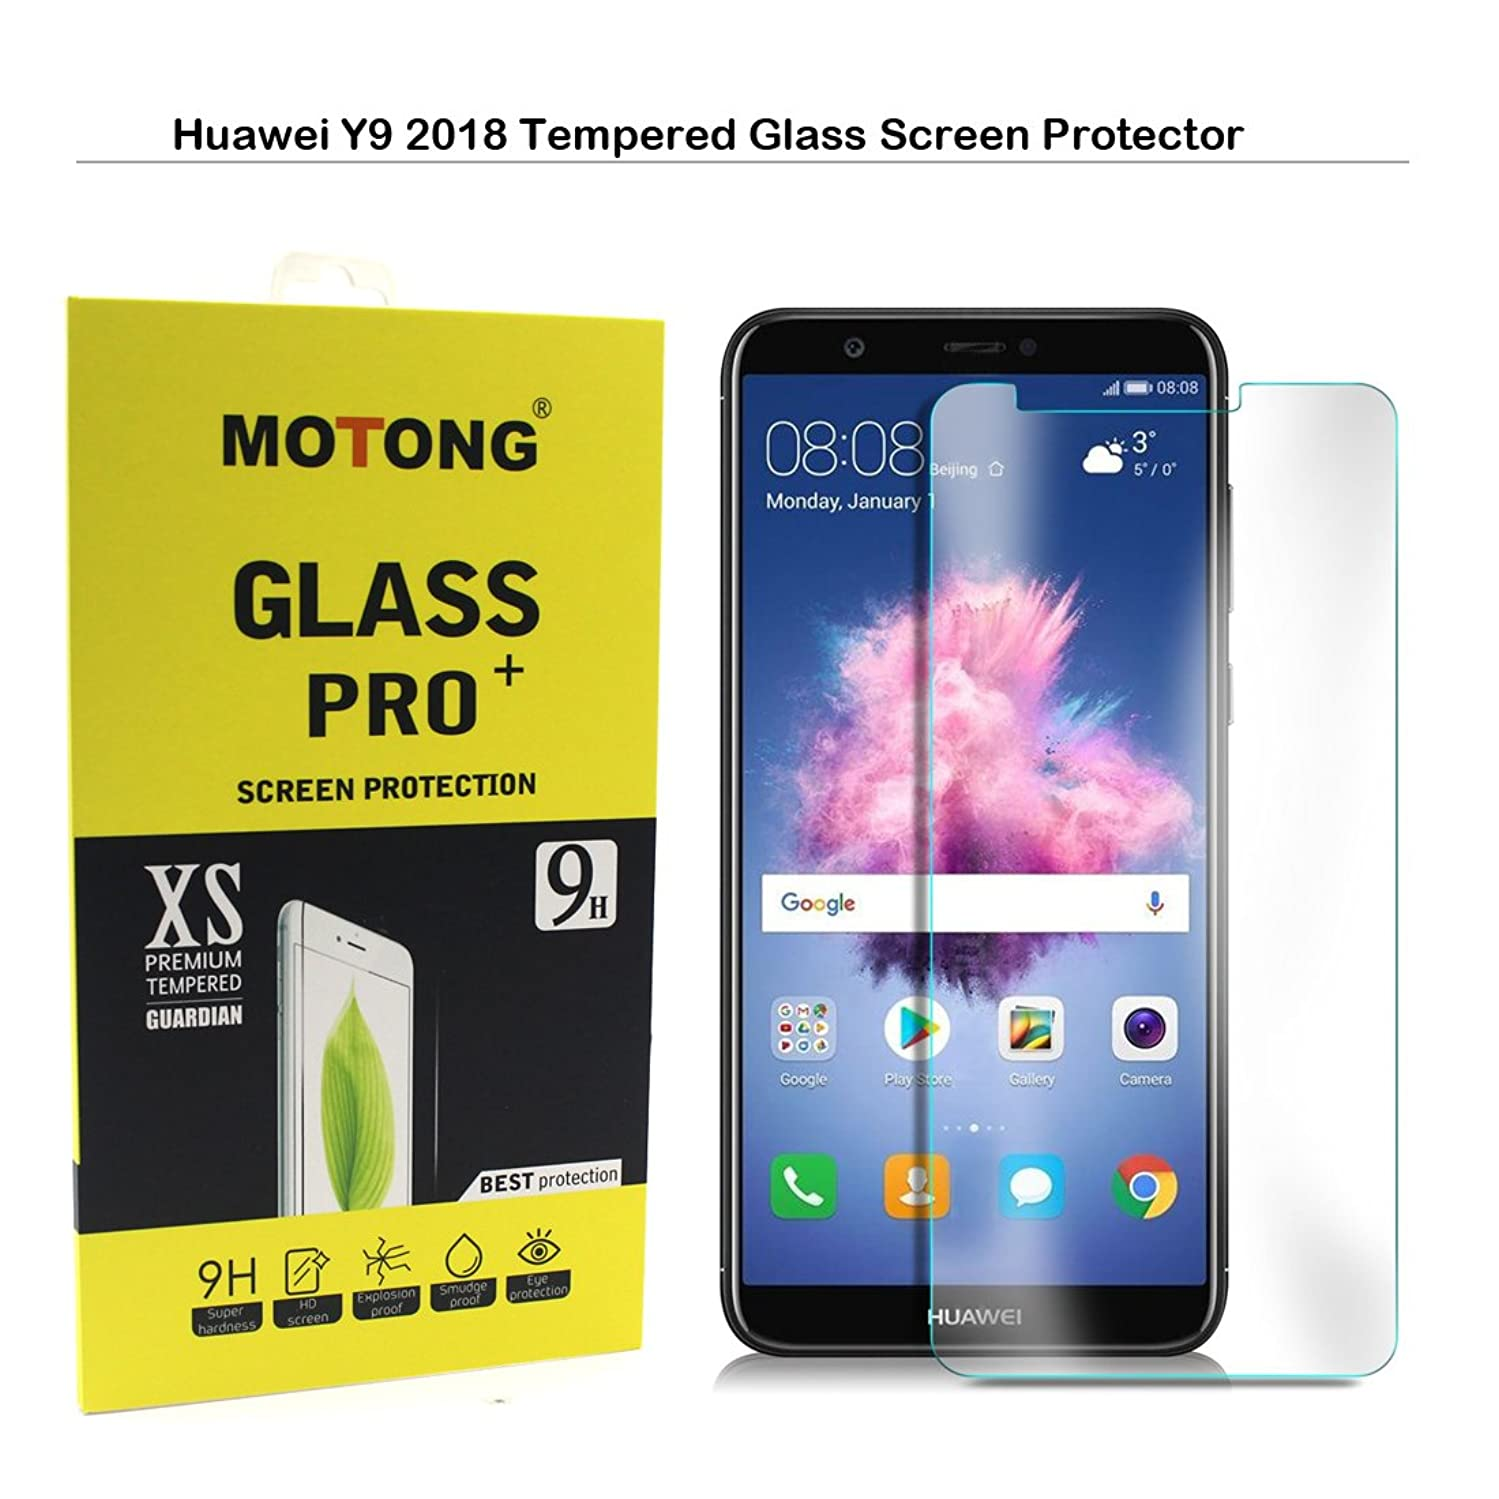 MOTONG Huawei Y9 2018 Screen Protector - MOTONG Tempered Glass Screen Protector For Huawei Y9 2018,9 H Hardness, 0.3mm Thickness,Made From Real Glass